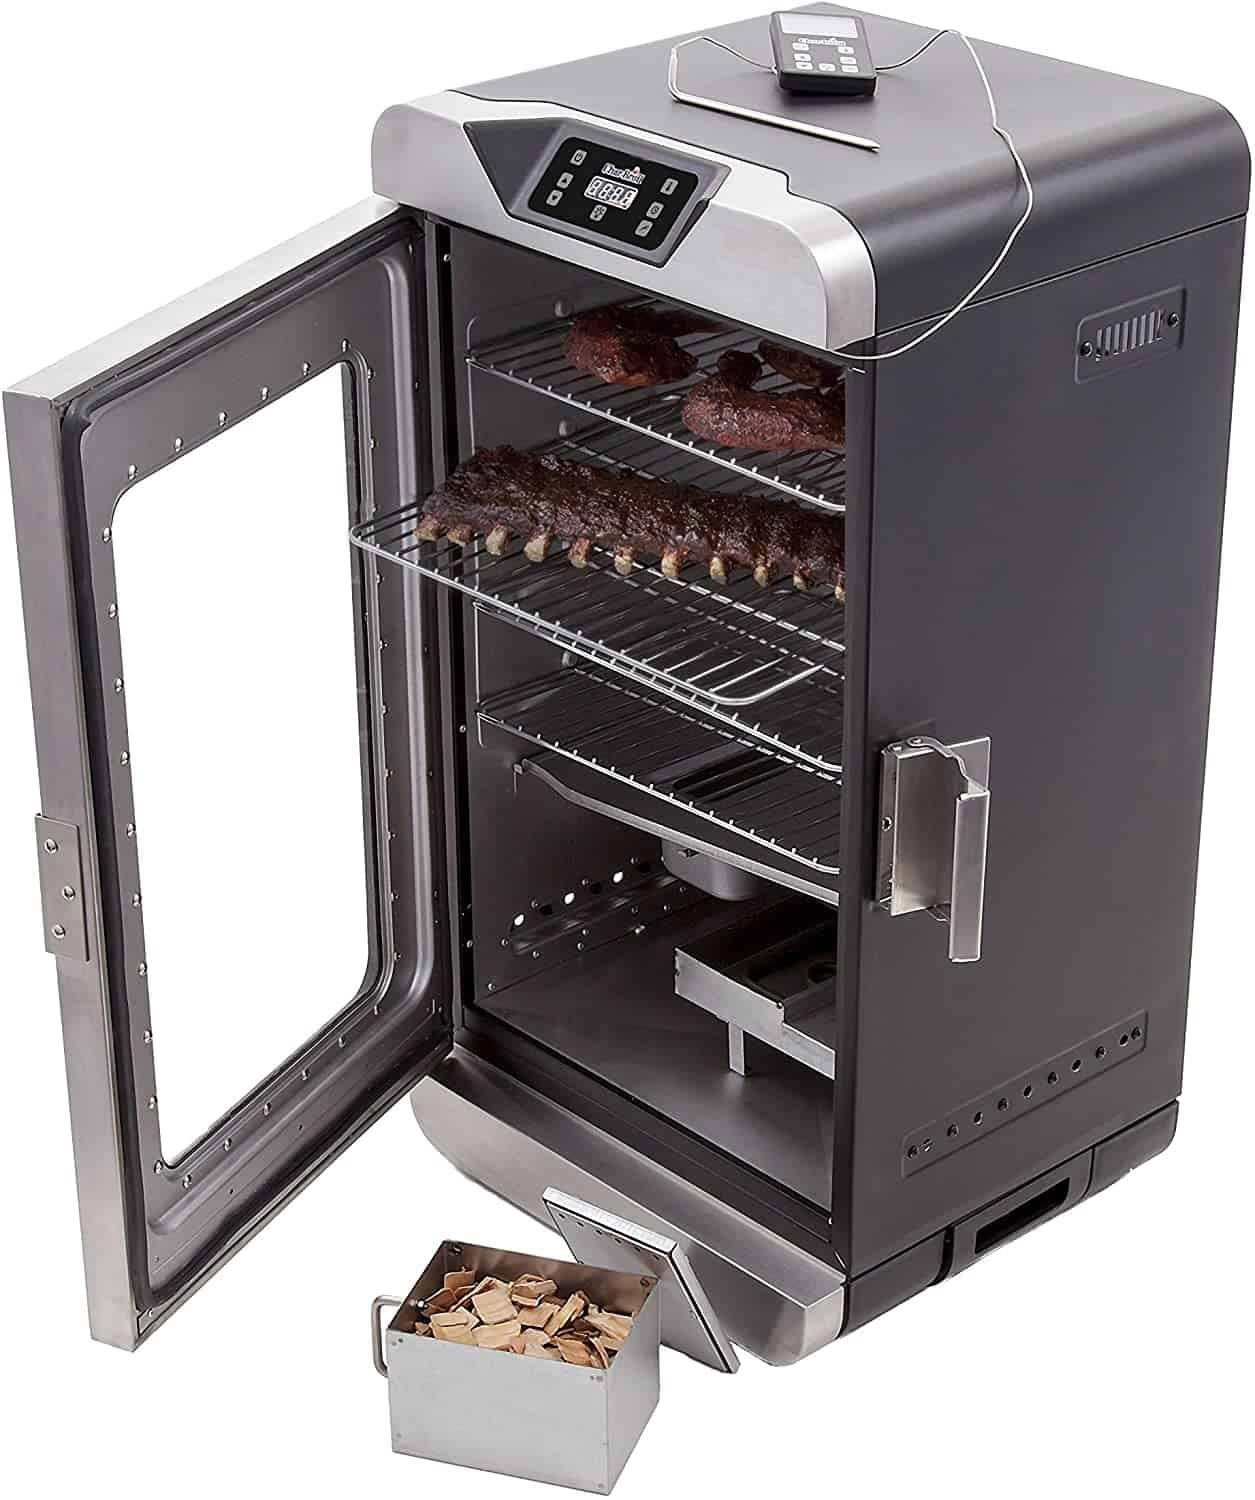 Easiest to use & with remote control- Char-Broil 17202004 Digital Electric Smoker